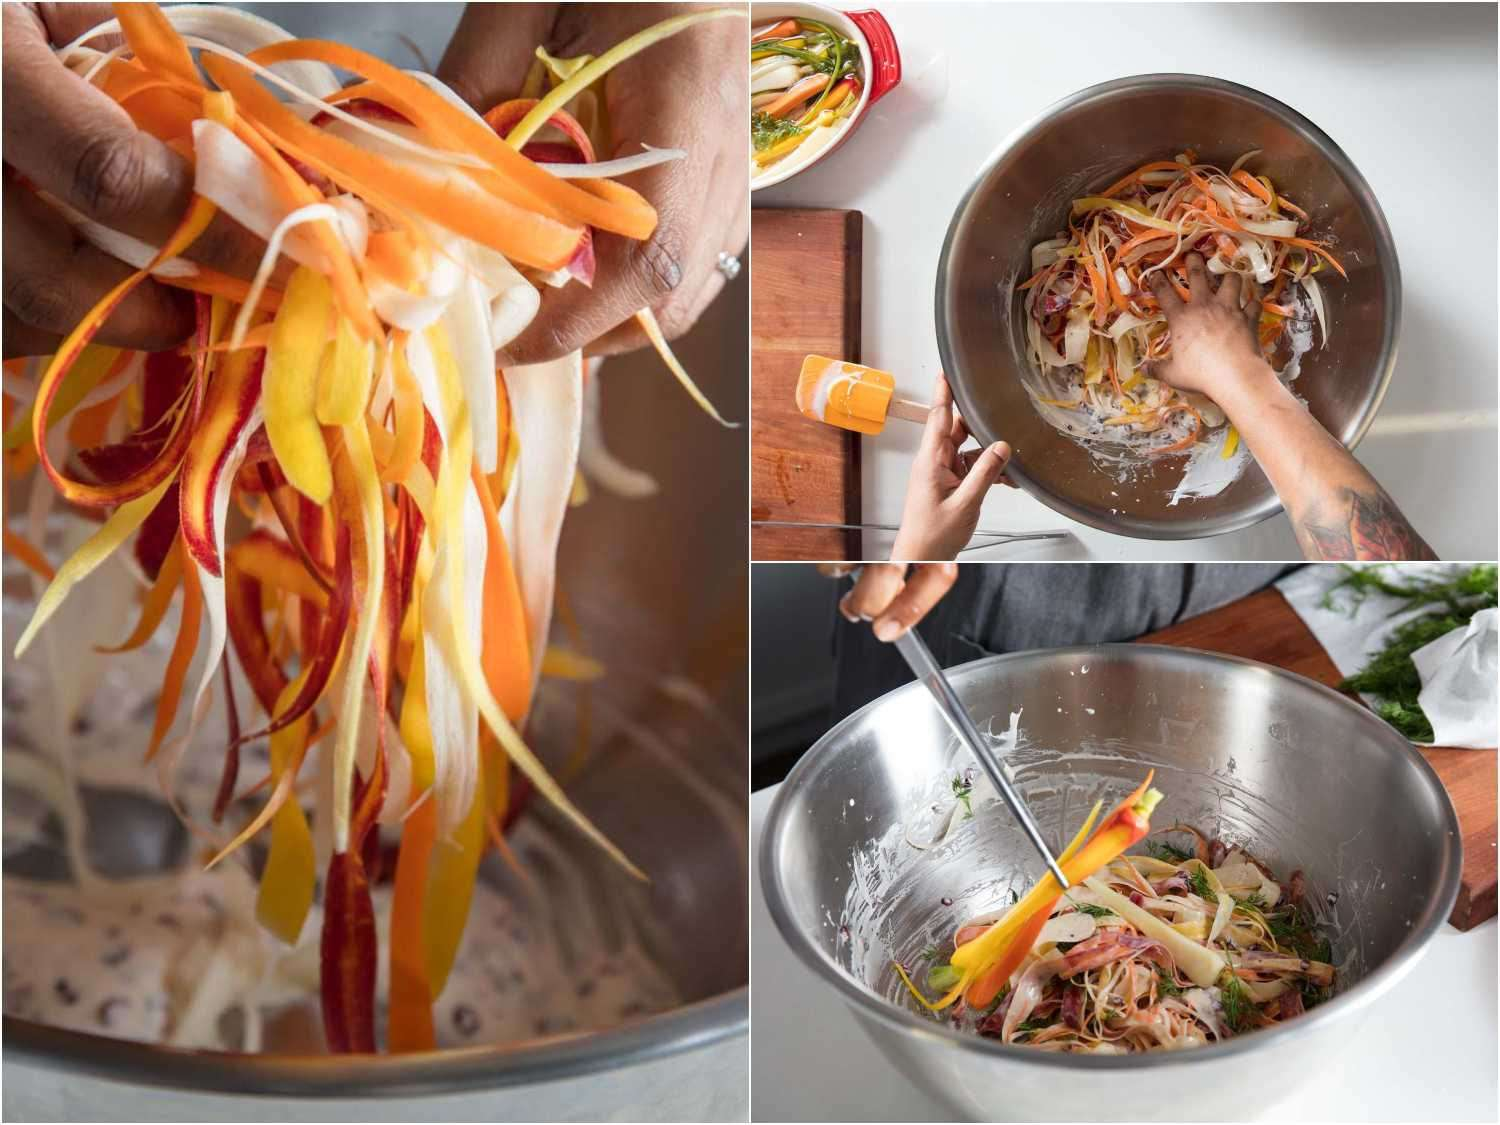 tossing carrot strips in dressing